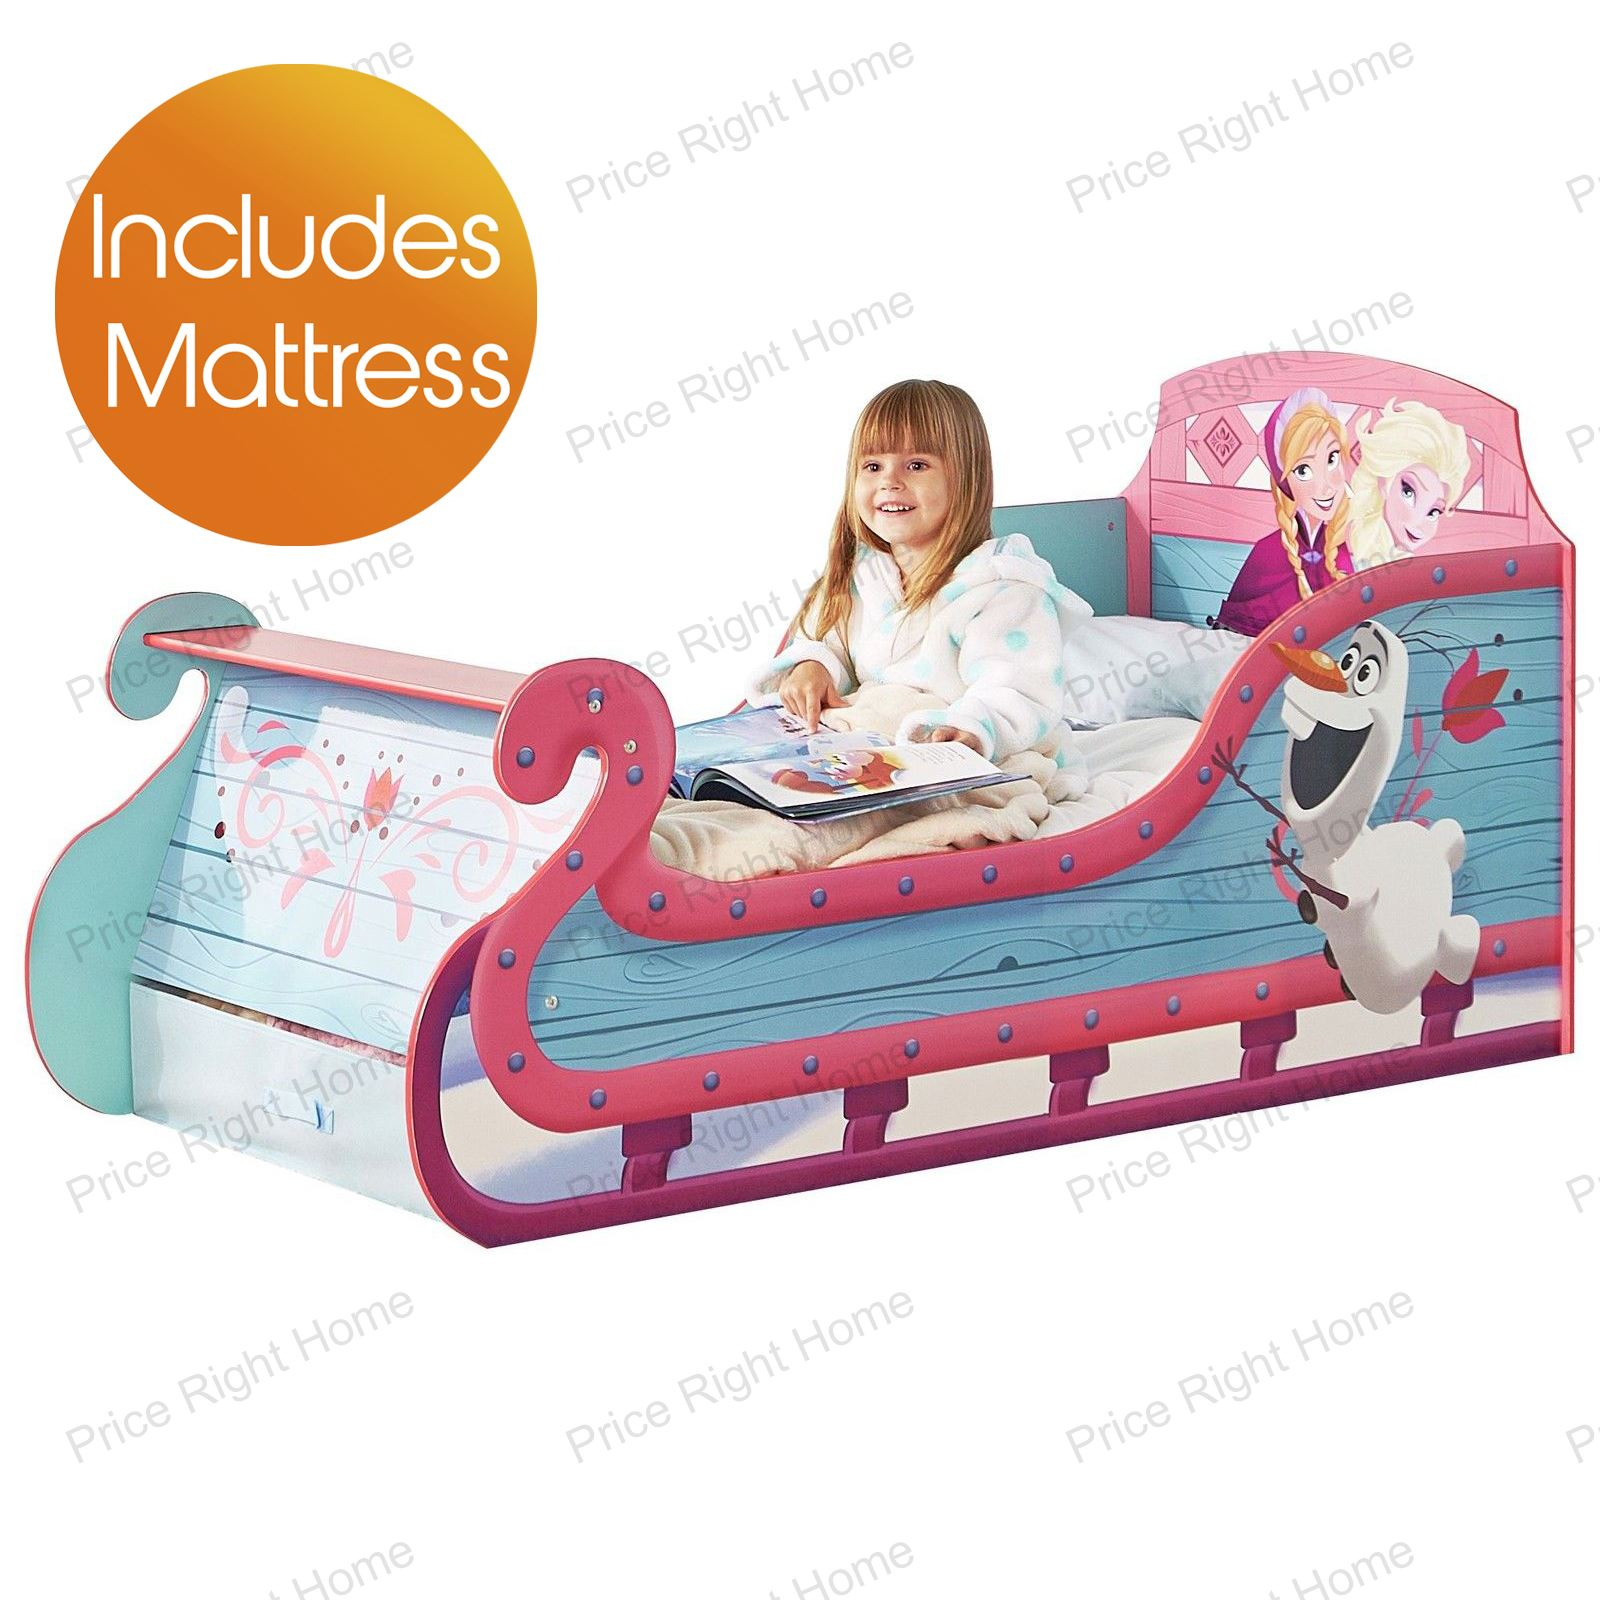 disney frozen schlitten kleinkind bett mit lager neue matratze ebay. Black Bedroom Furniture Sets. Home Design Ideas